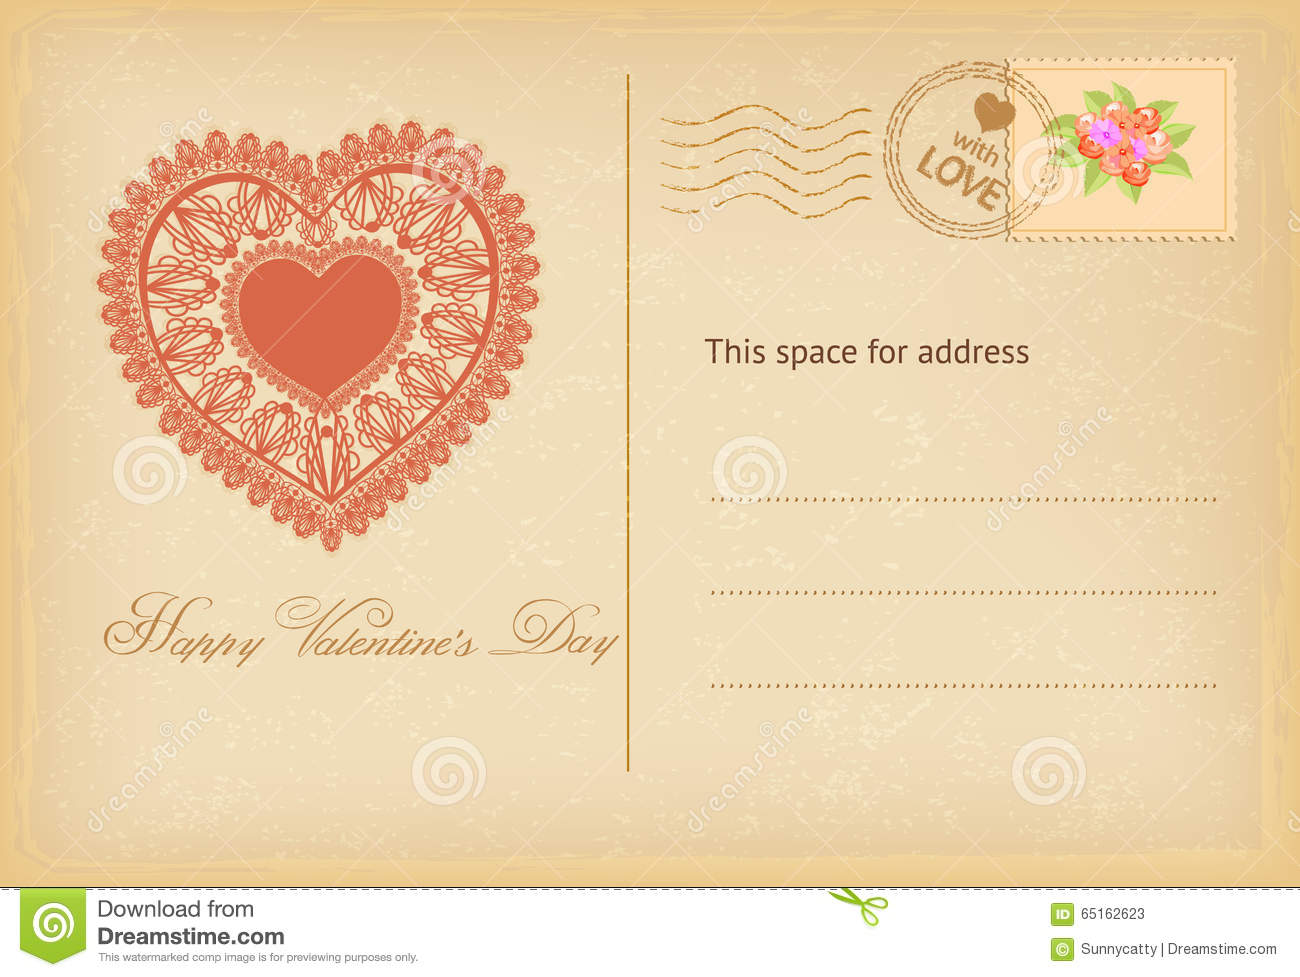 Valentines Day Vintage Postcard With Lace Heart Vector – Valentines Day Post Card